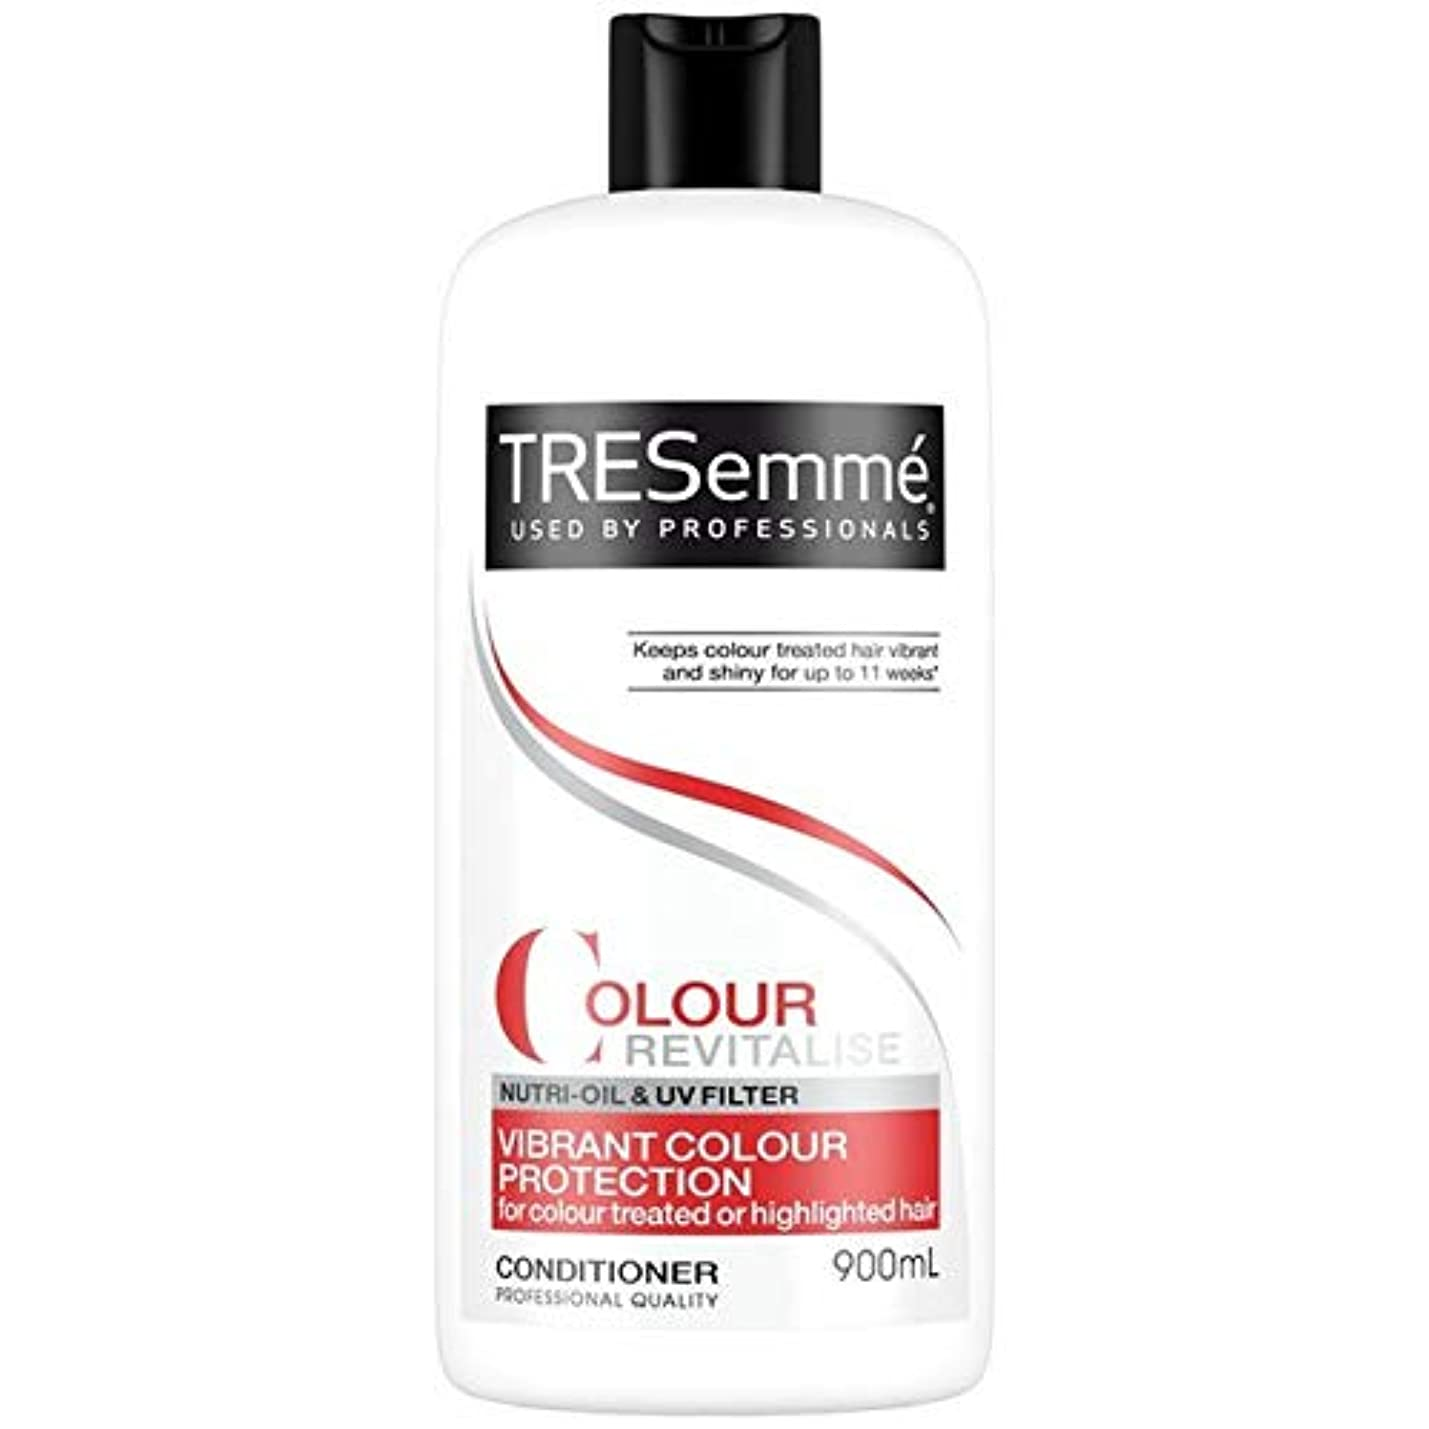 [Tresemme] Tresemme色はカラーフェード保護コンディショナー900ミリリットルを活性化 - TRESemme Colour Revitalise Colour Fade Protection Conditioner...